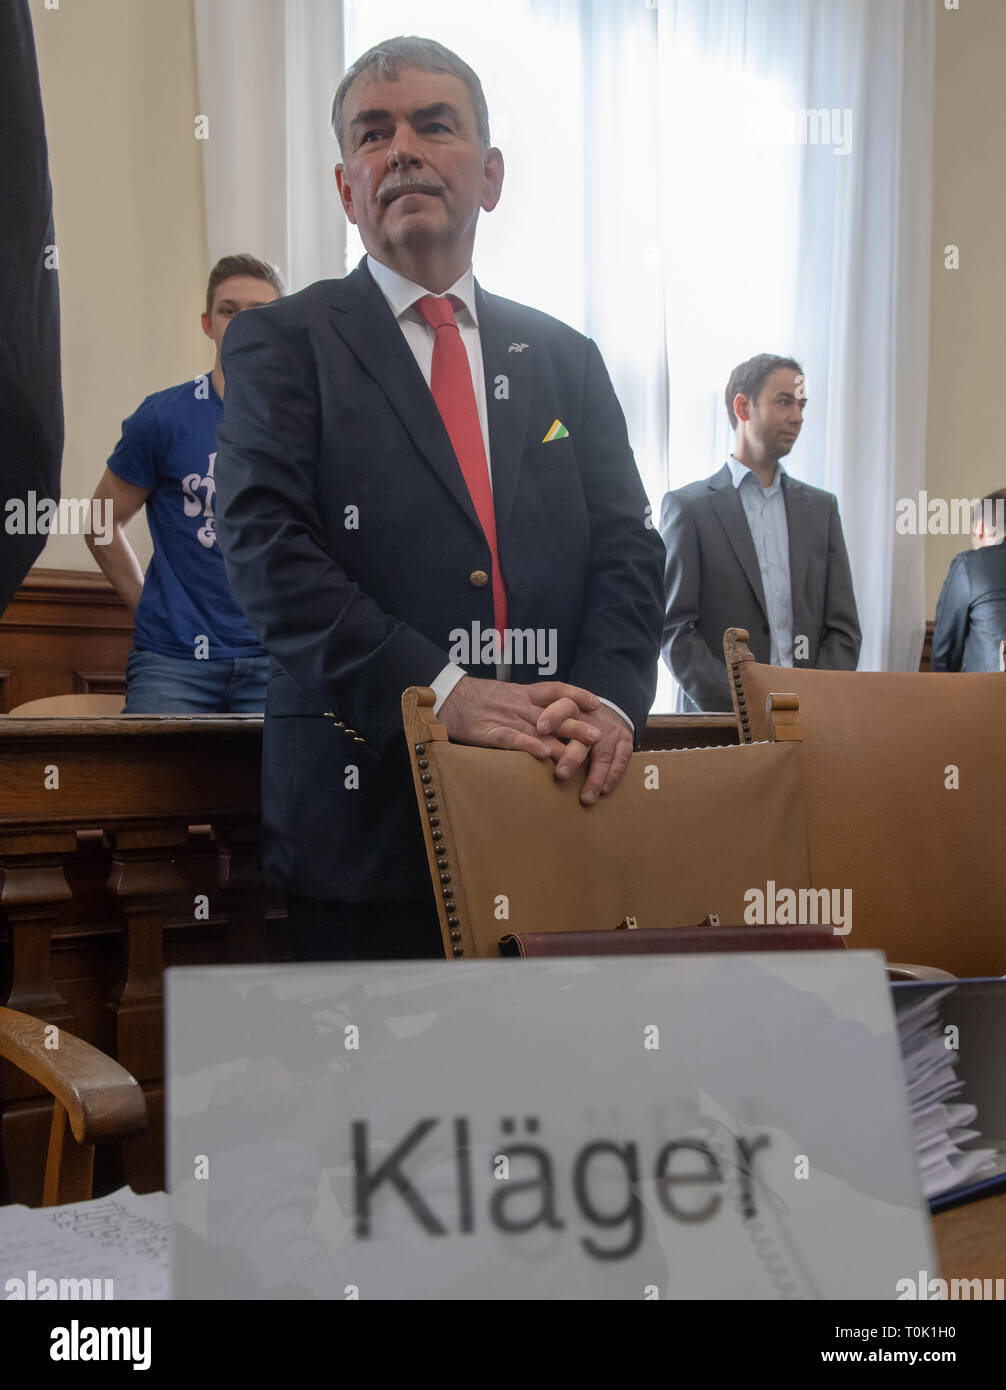 20 March 2019, Bavaria, München: The plaintiff Gustl Mollath stands in his place in the courtroom. In the trial, Mollath demands about 1.8 million euros from the Free State of Bavaria for his unjustified placement in a psychiatric institution. Photo: Peter Kneffel/dpa - Stock Image